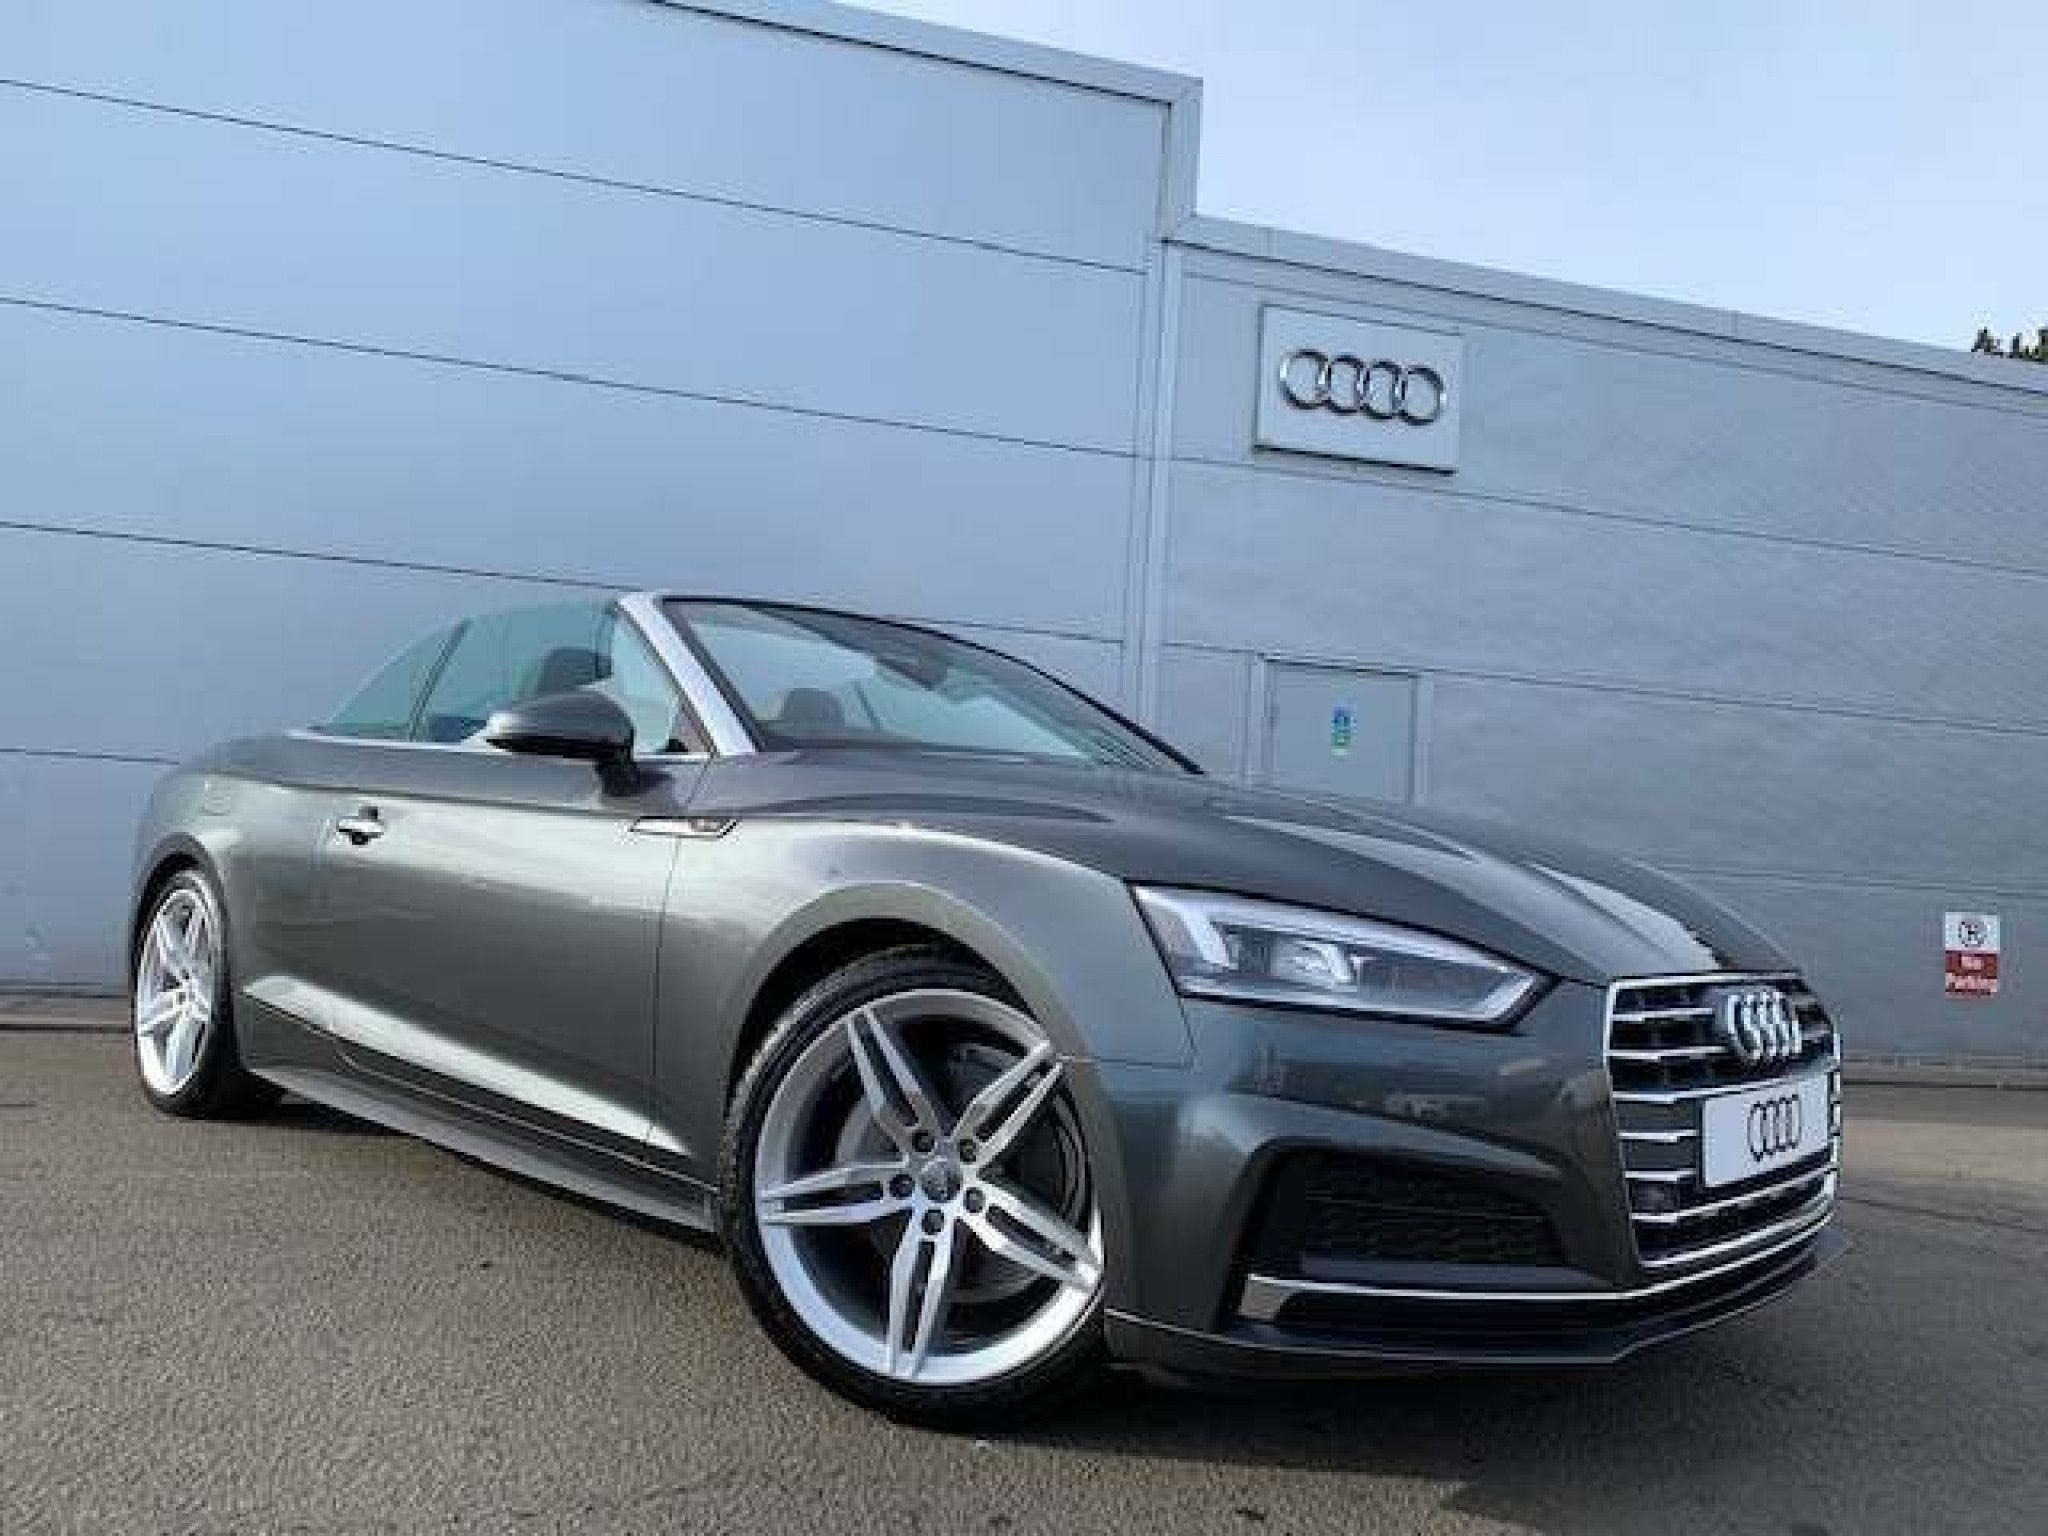 Audi A5 Cabriolet 2 0 Tdi 40 S Line Cabriolet S Tronic S S 2dr In 2020 Audi A5 A5 Cabriolet Audi